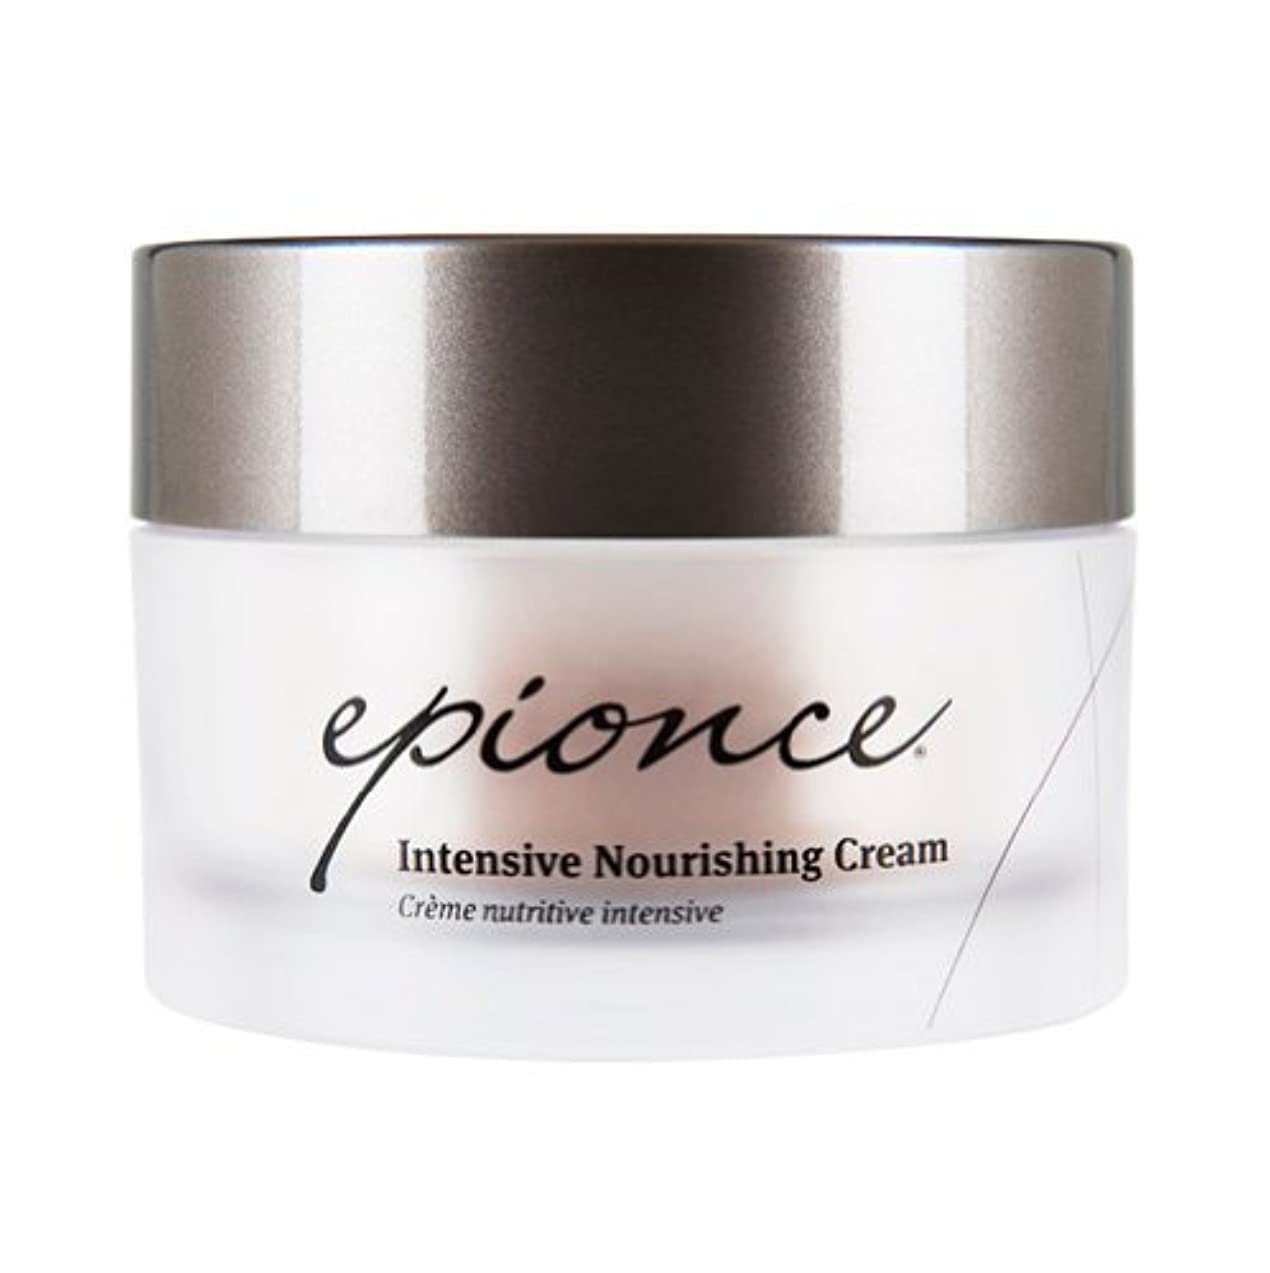 パン屋整理する物理的にEpionce Intensive Nourishing Cream - For Extremely Dry/Photoaged Skin 50g/1.7oz並行輸入品